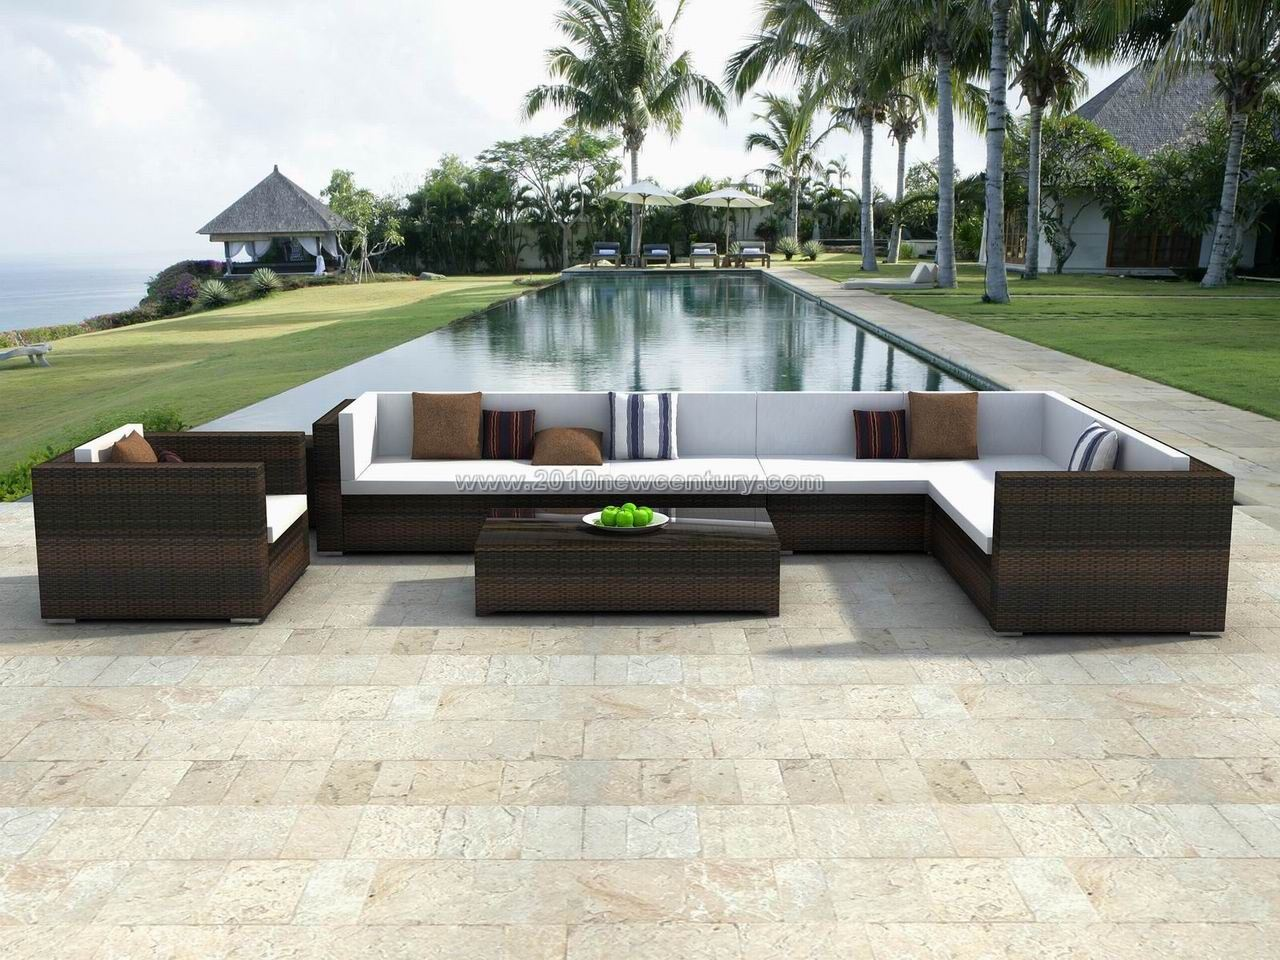 China wicker furniture outdoor furniture rattan for Outdoor pool furniture